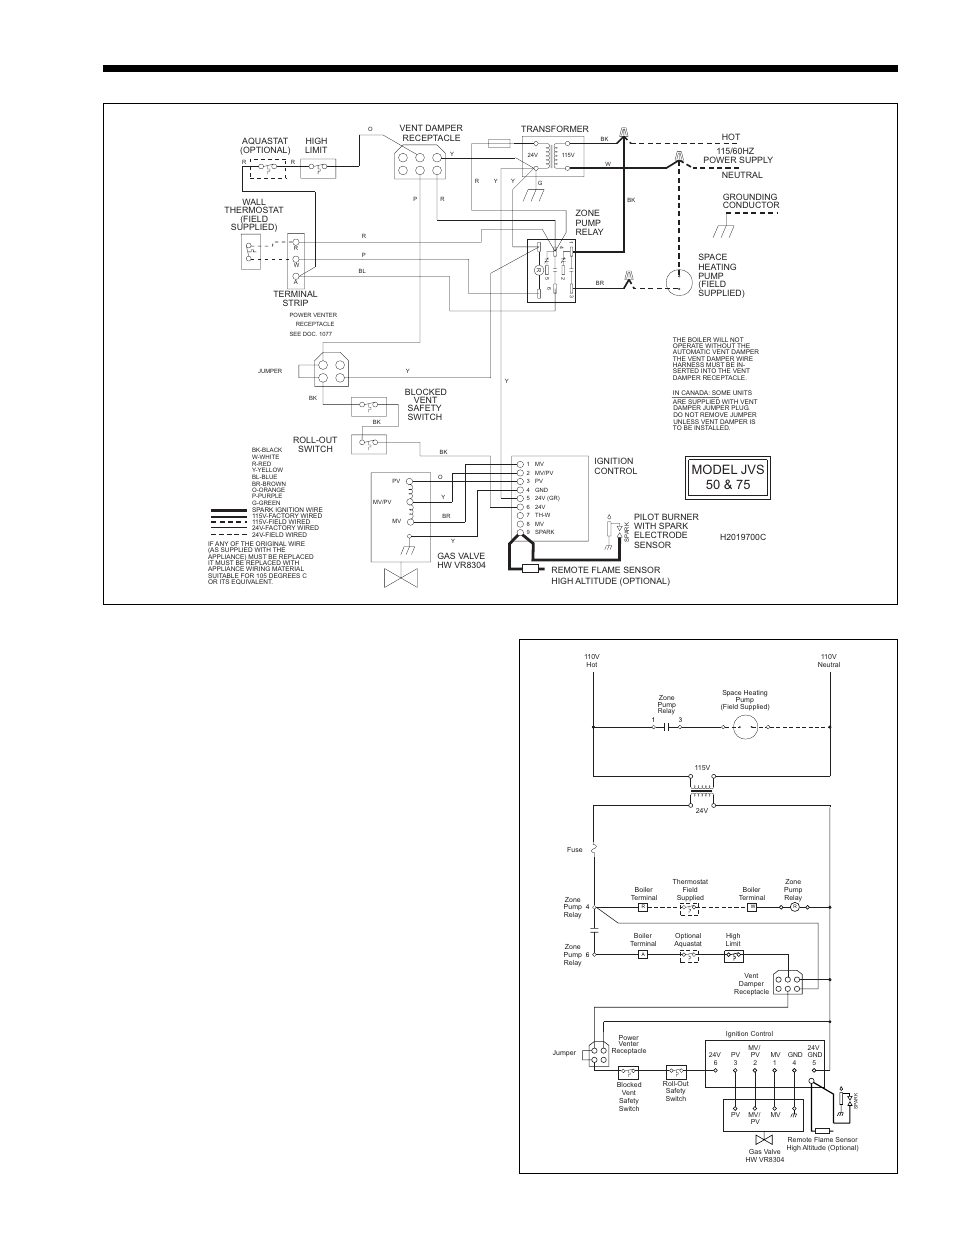 How To Install And Wire The Honeywell L4064b Combination Furnace – L4064b Wiring- Diagram